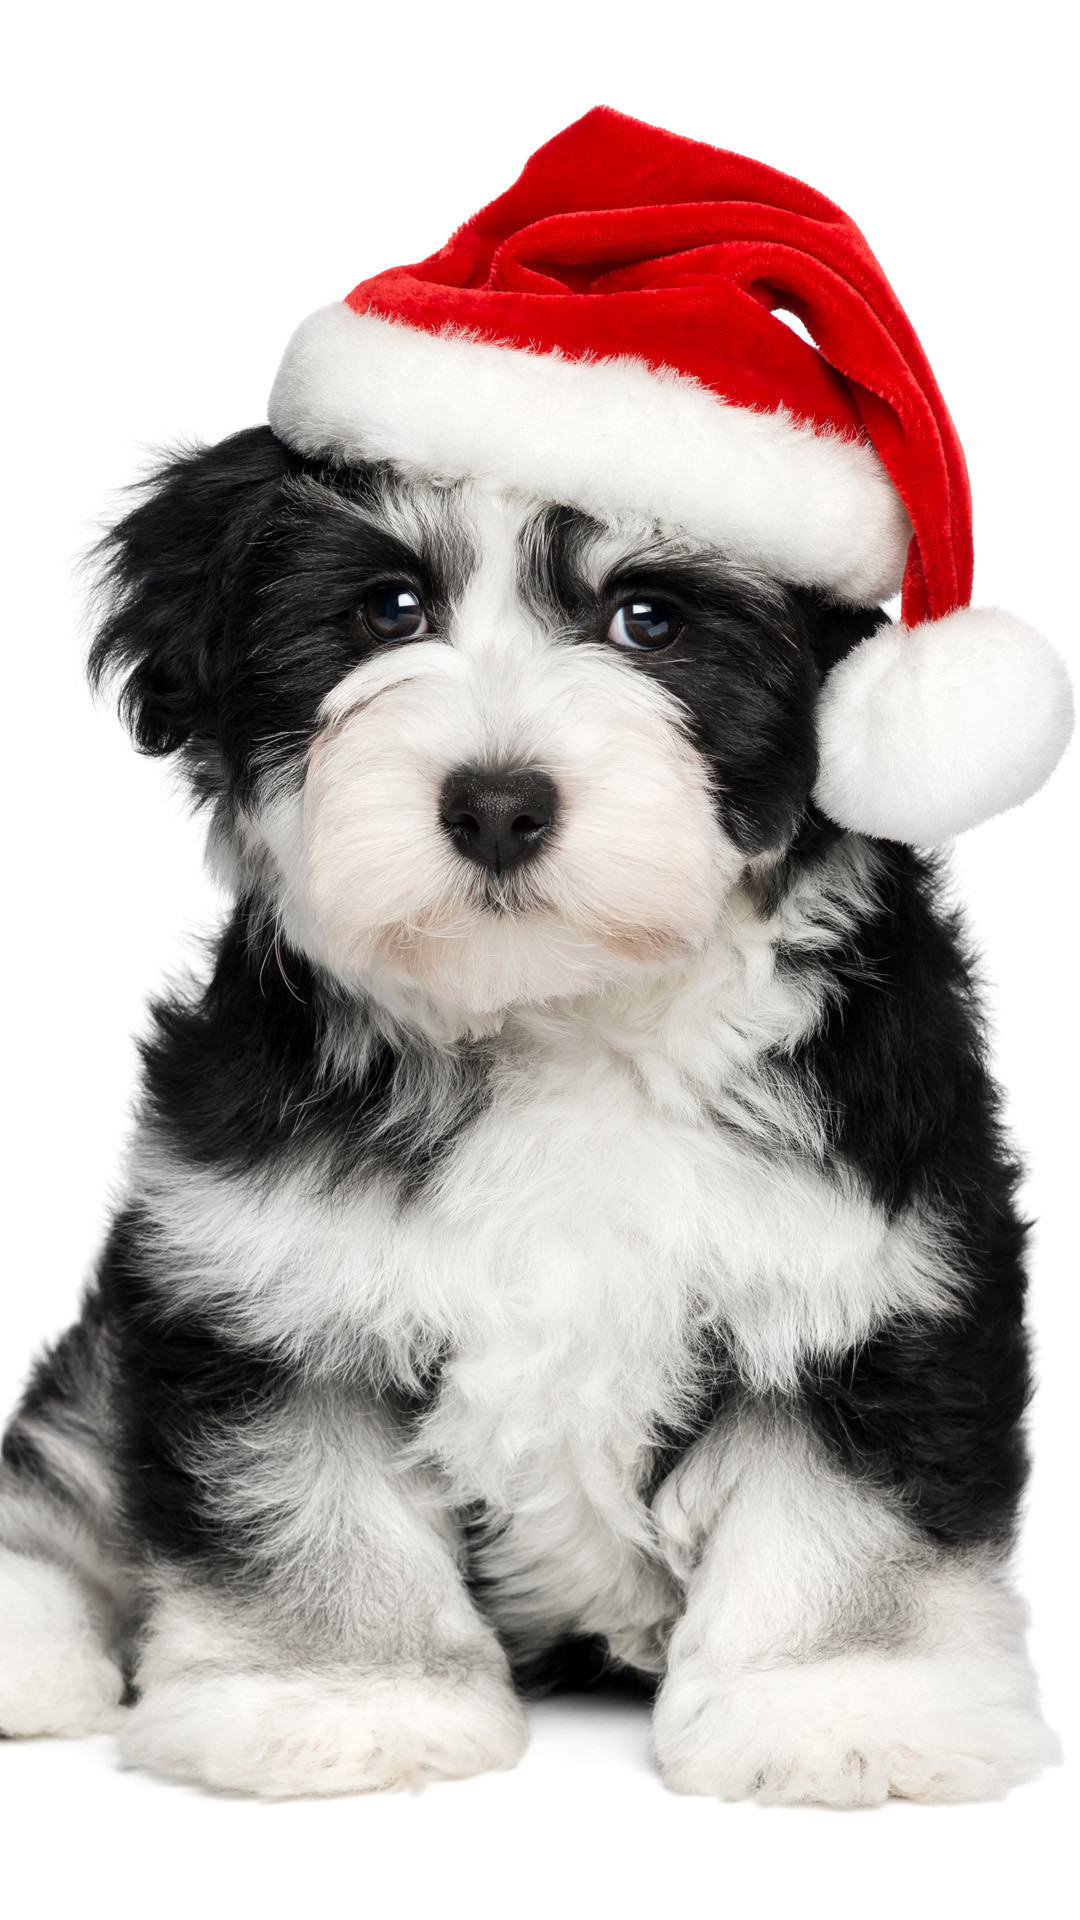 Dogs And Puppies Wallpaper Christmas Puppy Wallpa...